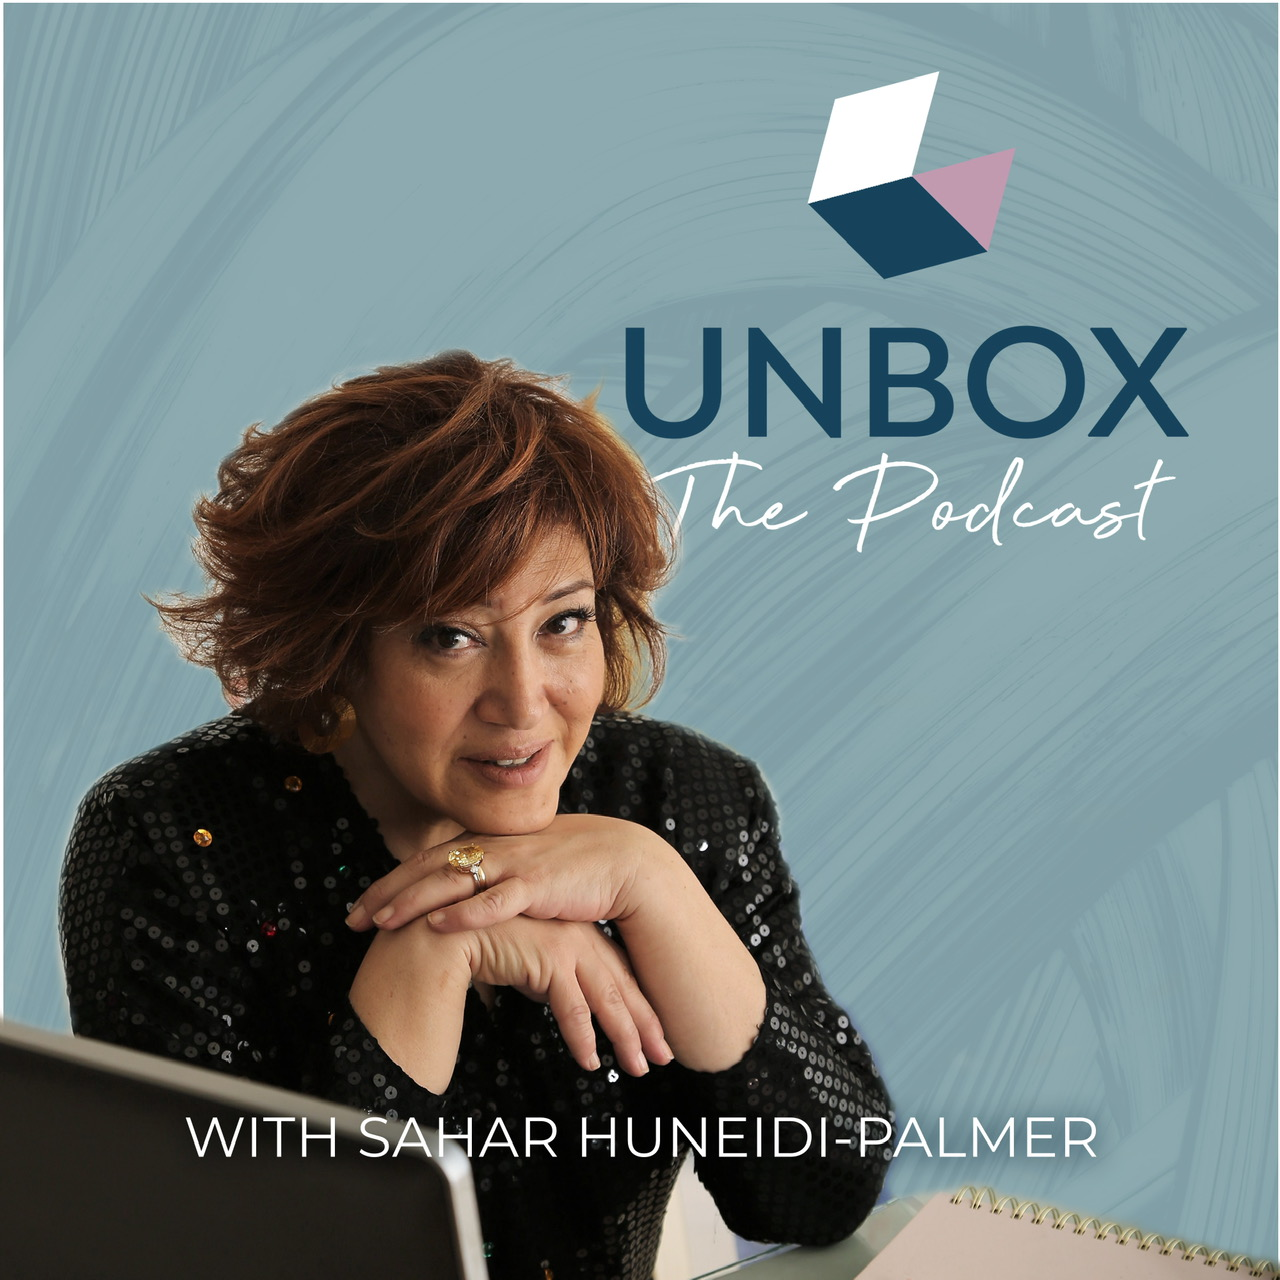 Unbox The Podcast